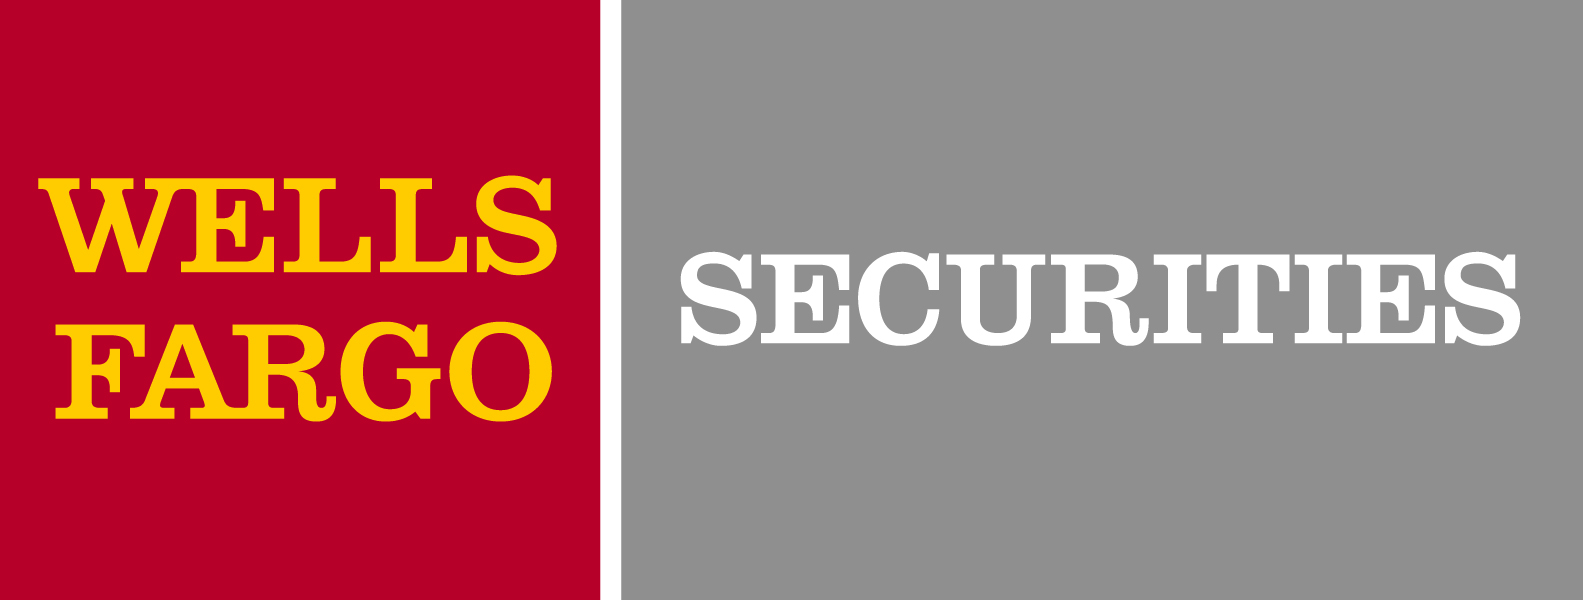 Wells Fargo_Securities_Logo.jpg